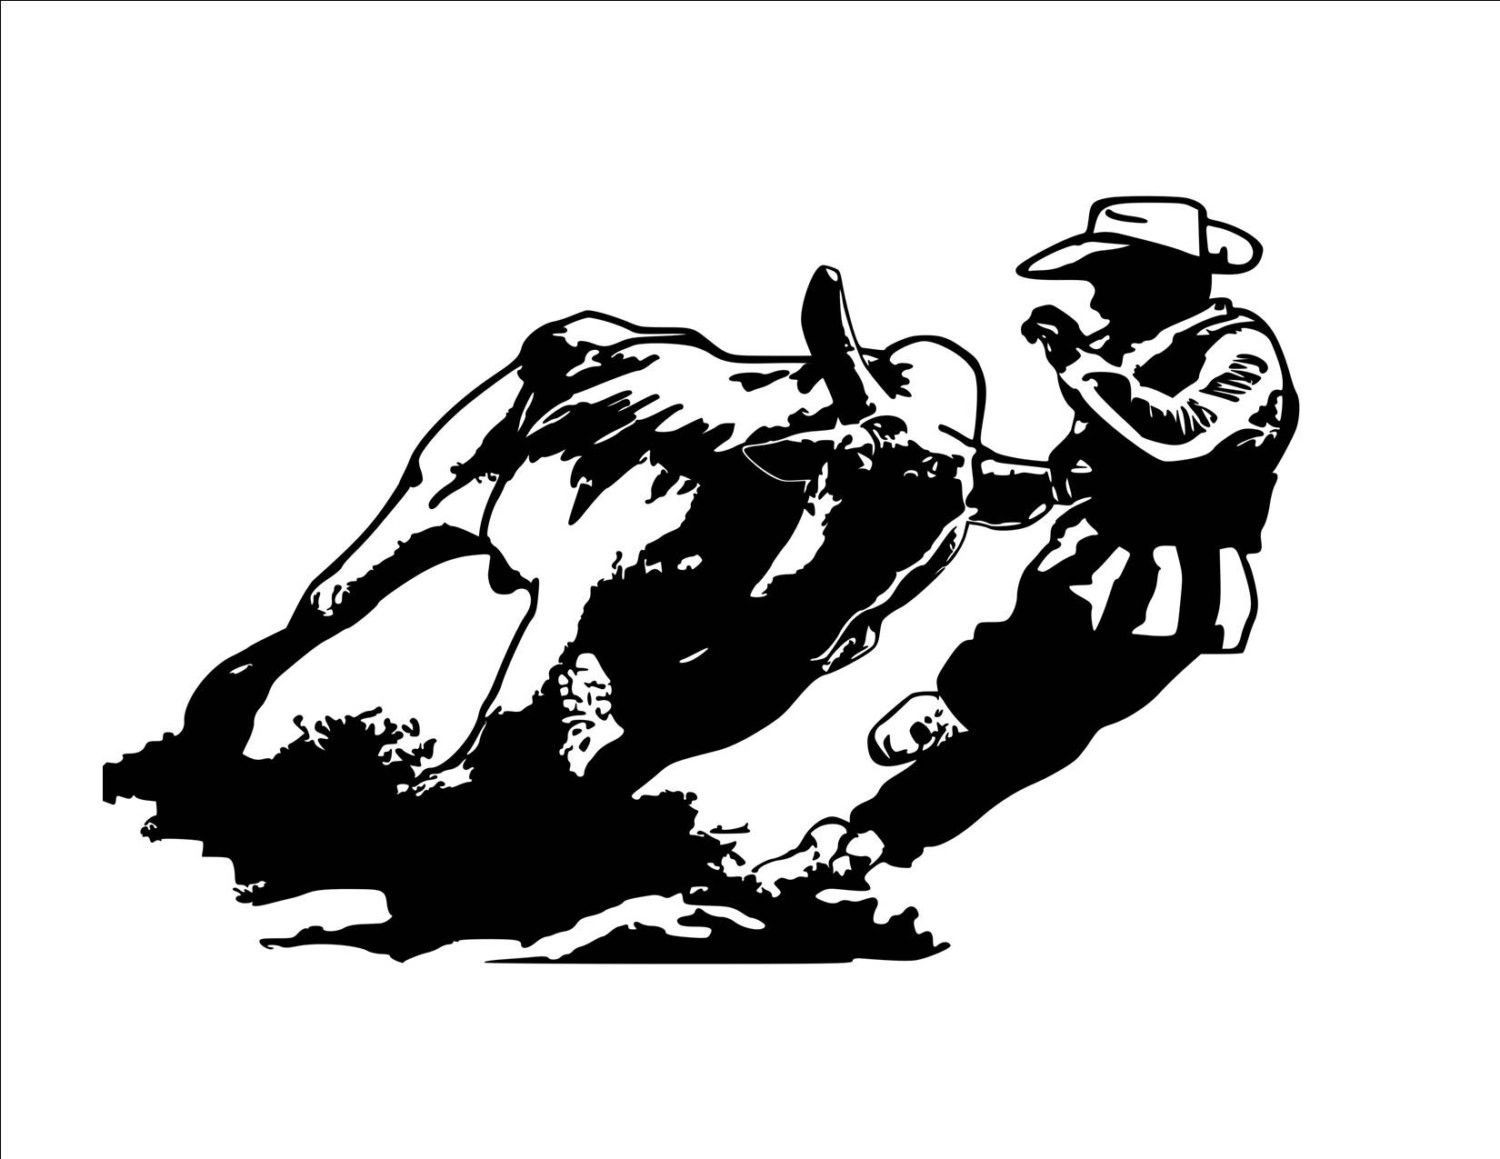 Horse Rodeo Bull Fighter Wall Decal Rodeo Sticker 36 Inches X 25 Inches 823 Hr Rodeo Bull Riders Bull